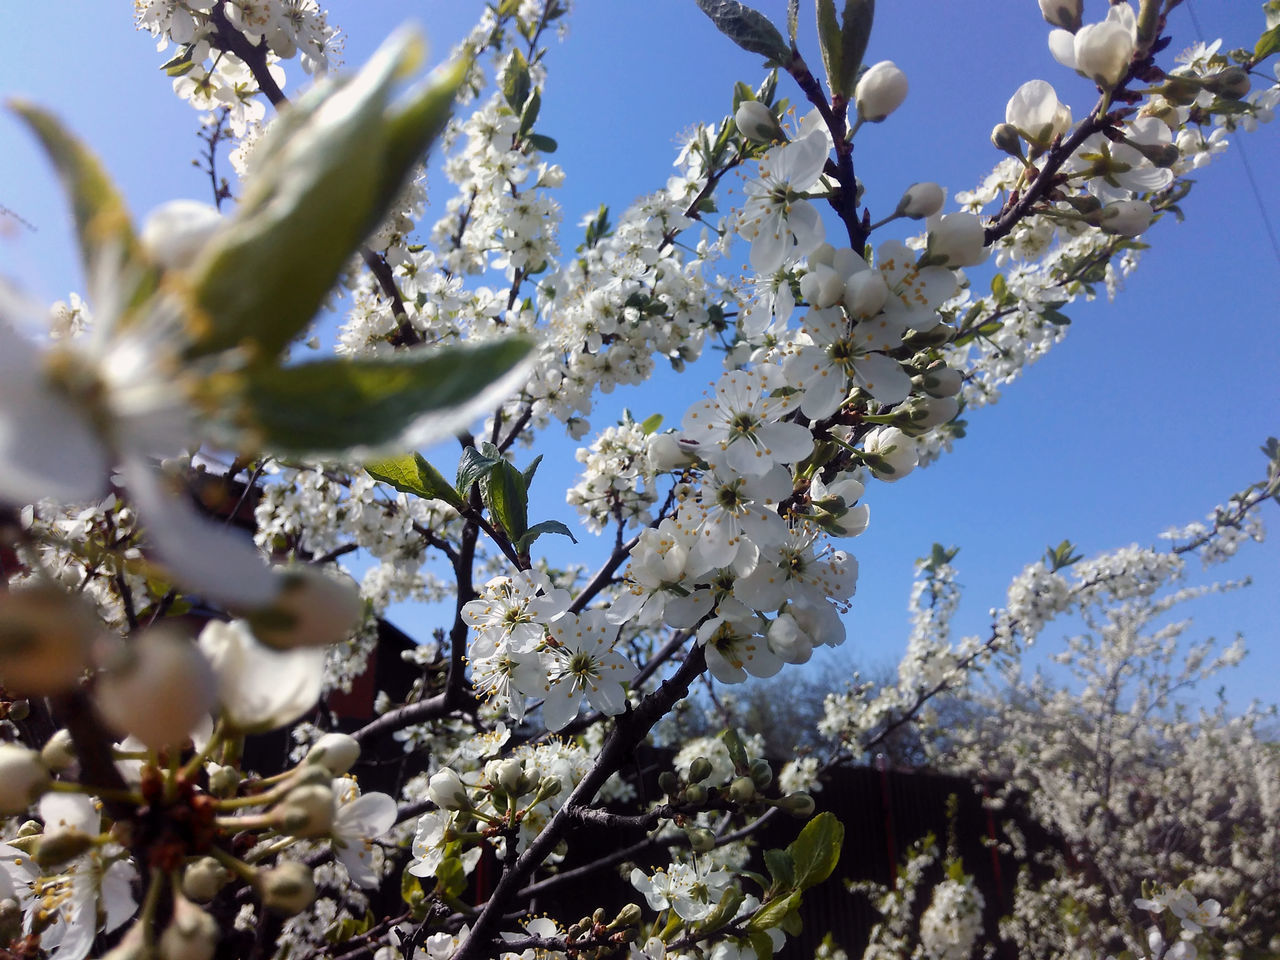 flower, tree, blossom, growth, fragility, nature, branch, beauty in nature, springtime, apple blossom, apple tree, low angle view, freshness, white color, botany, no people, day, orchard, twig, outdoors, petal, spring, close-up, clear sky, sky, flower head